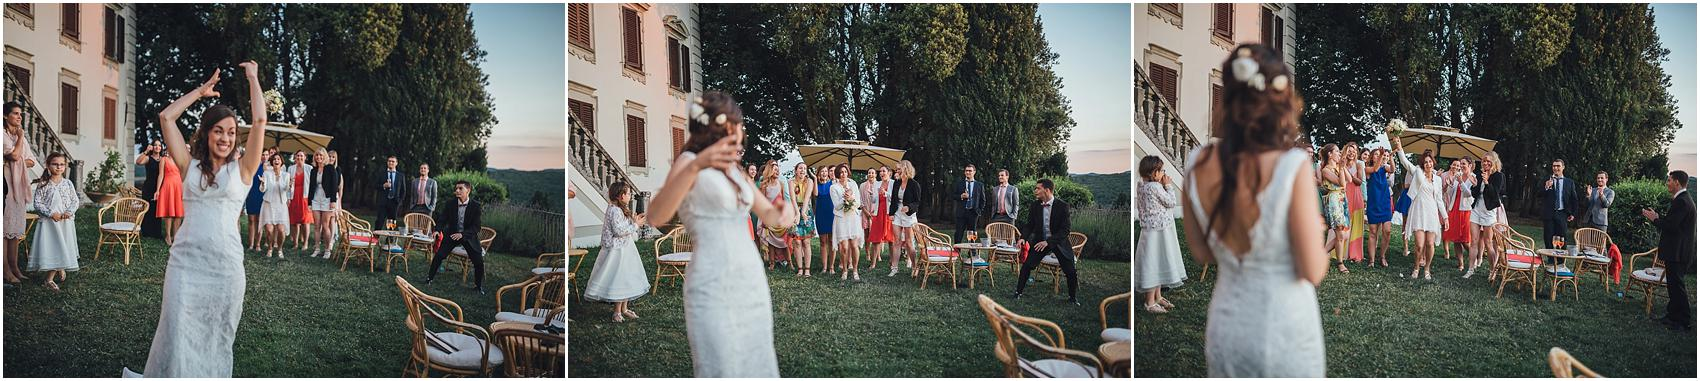 destination-wedding-photographer-tuscany_0161